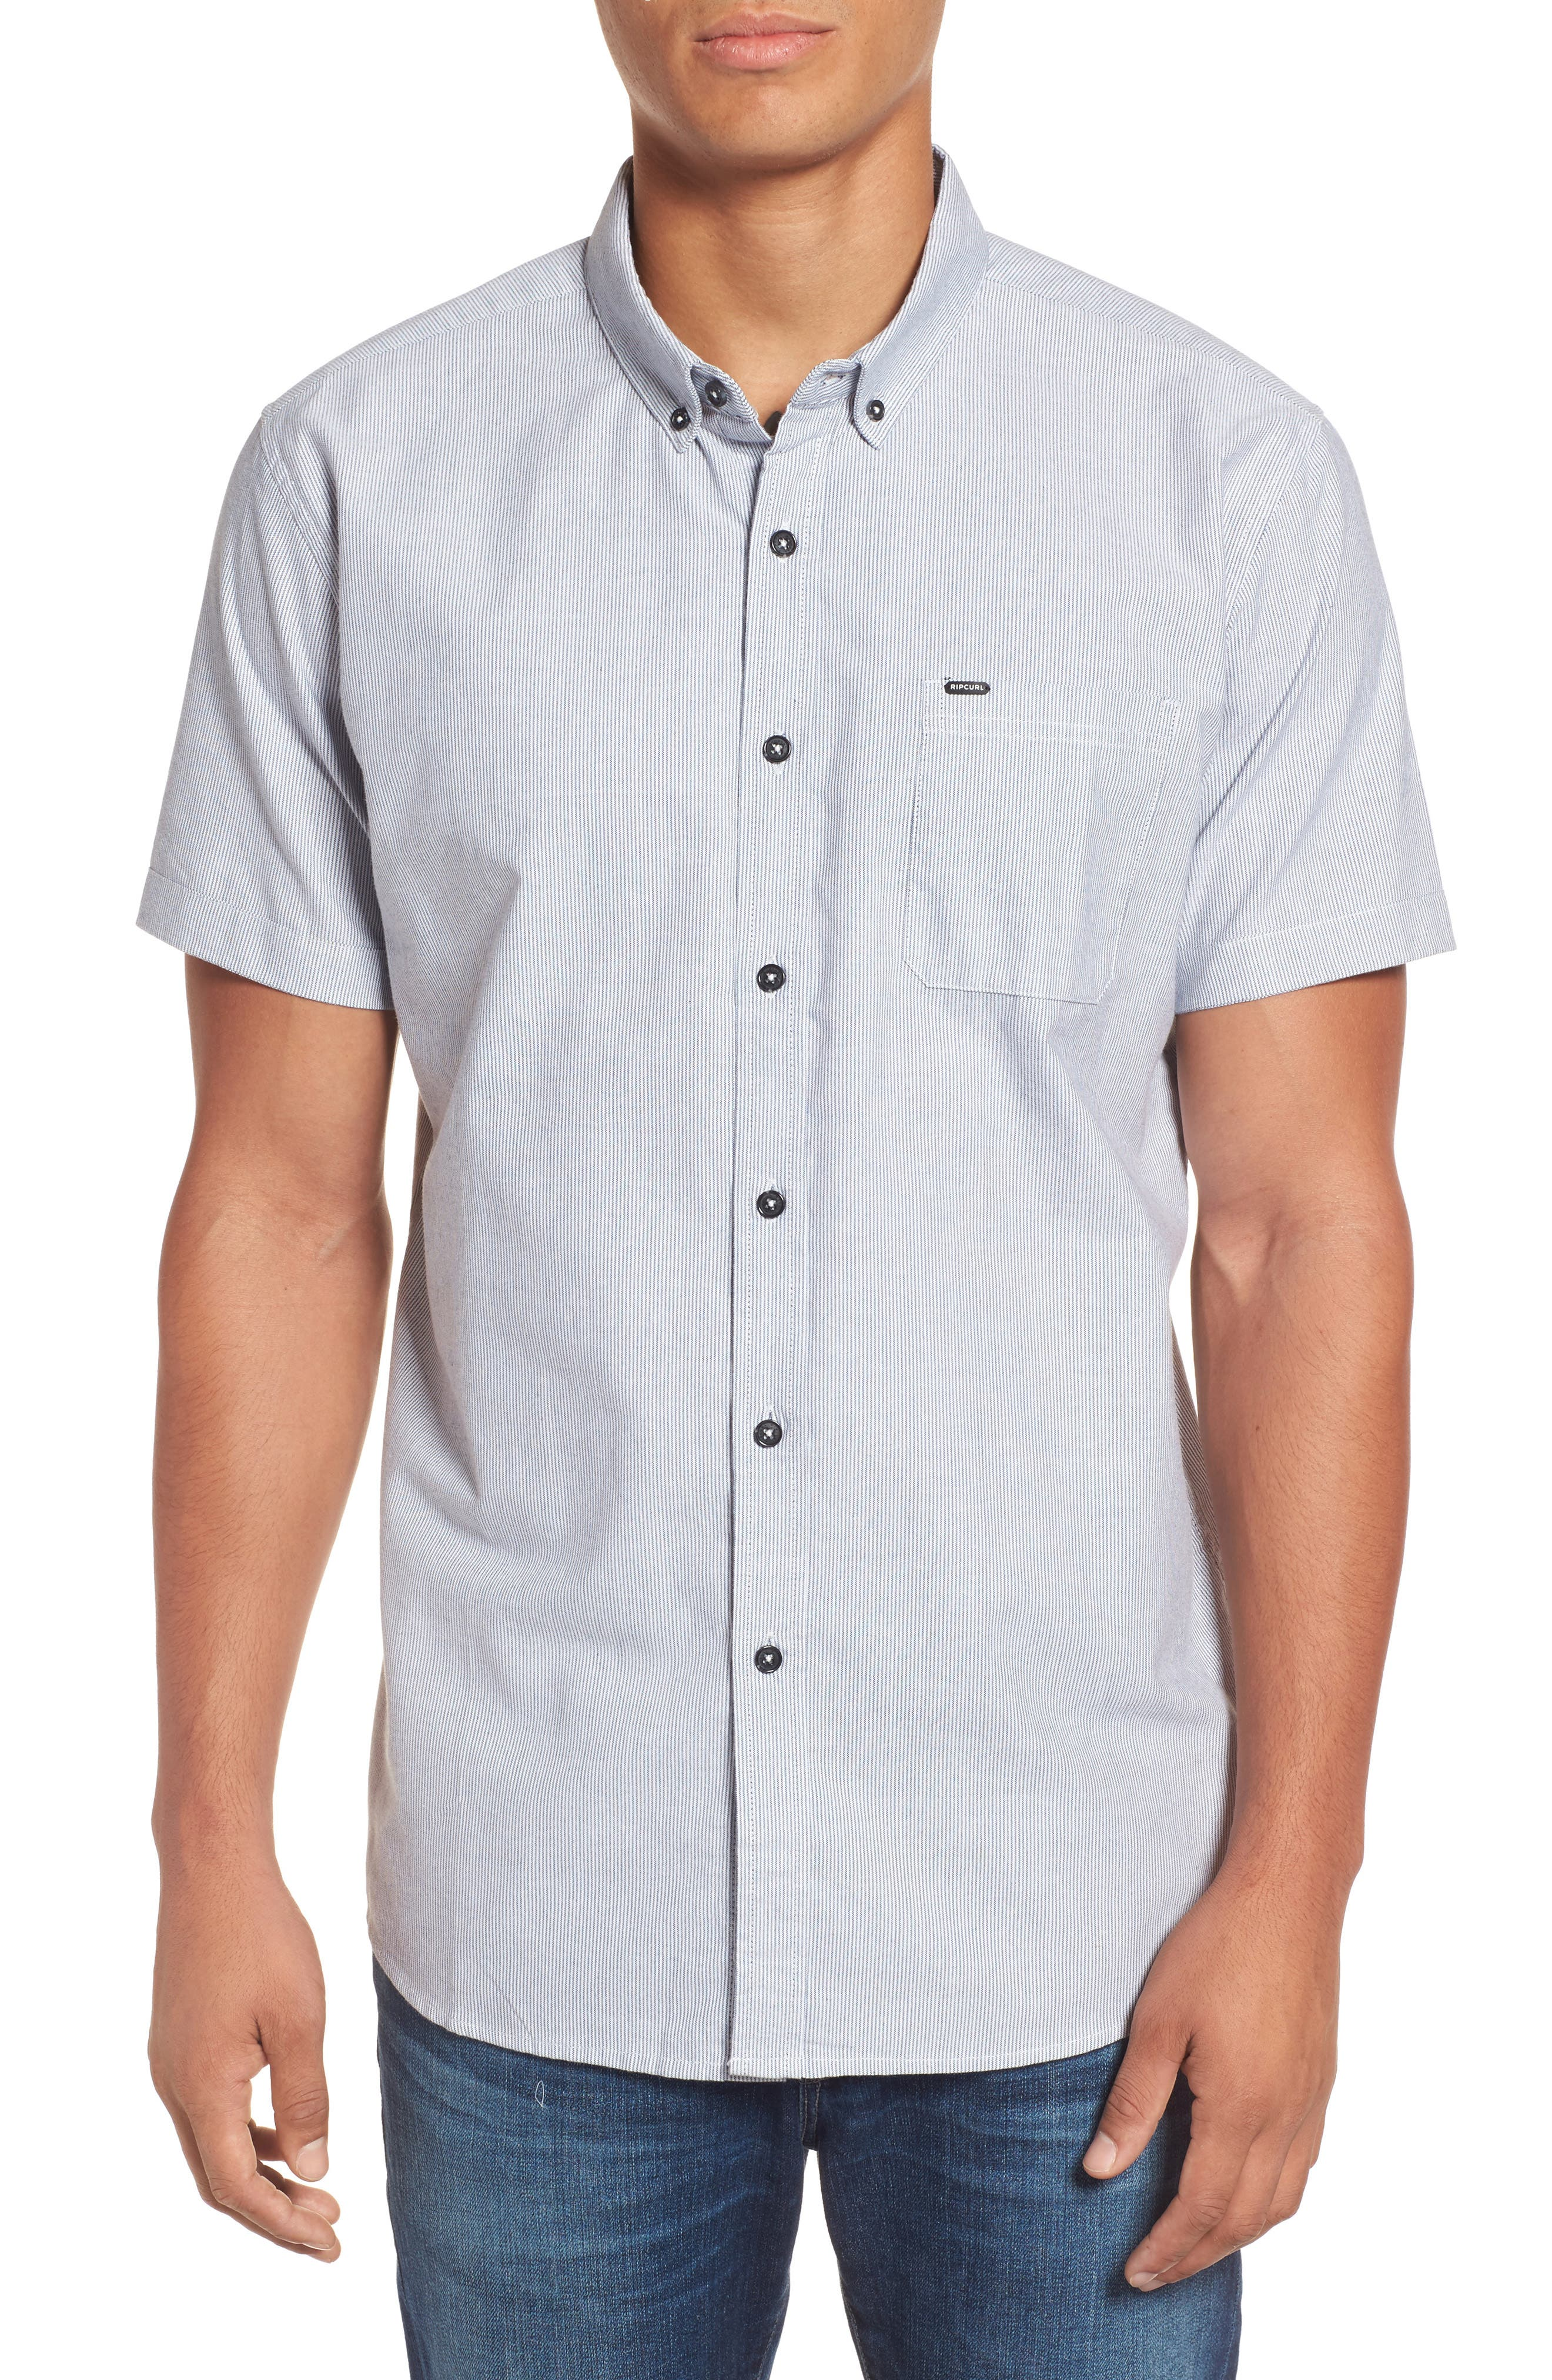 Ourtime Woven Shirt,                         Main,                         color, 116